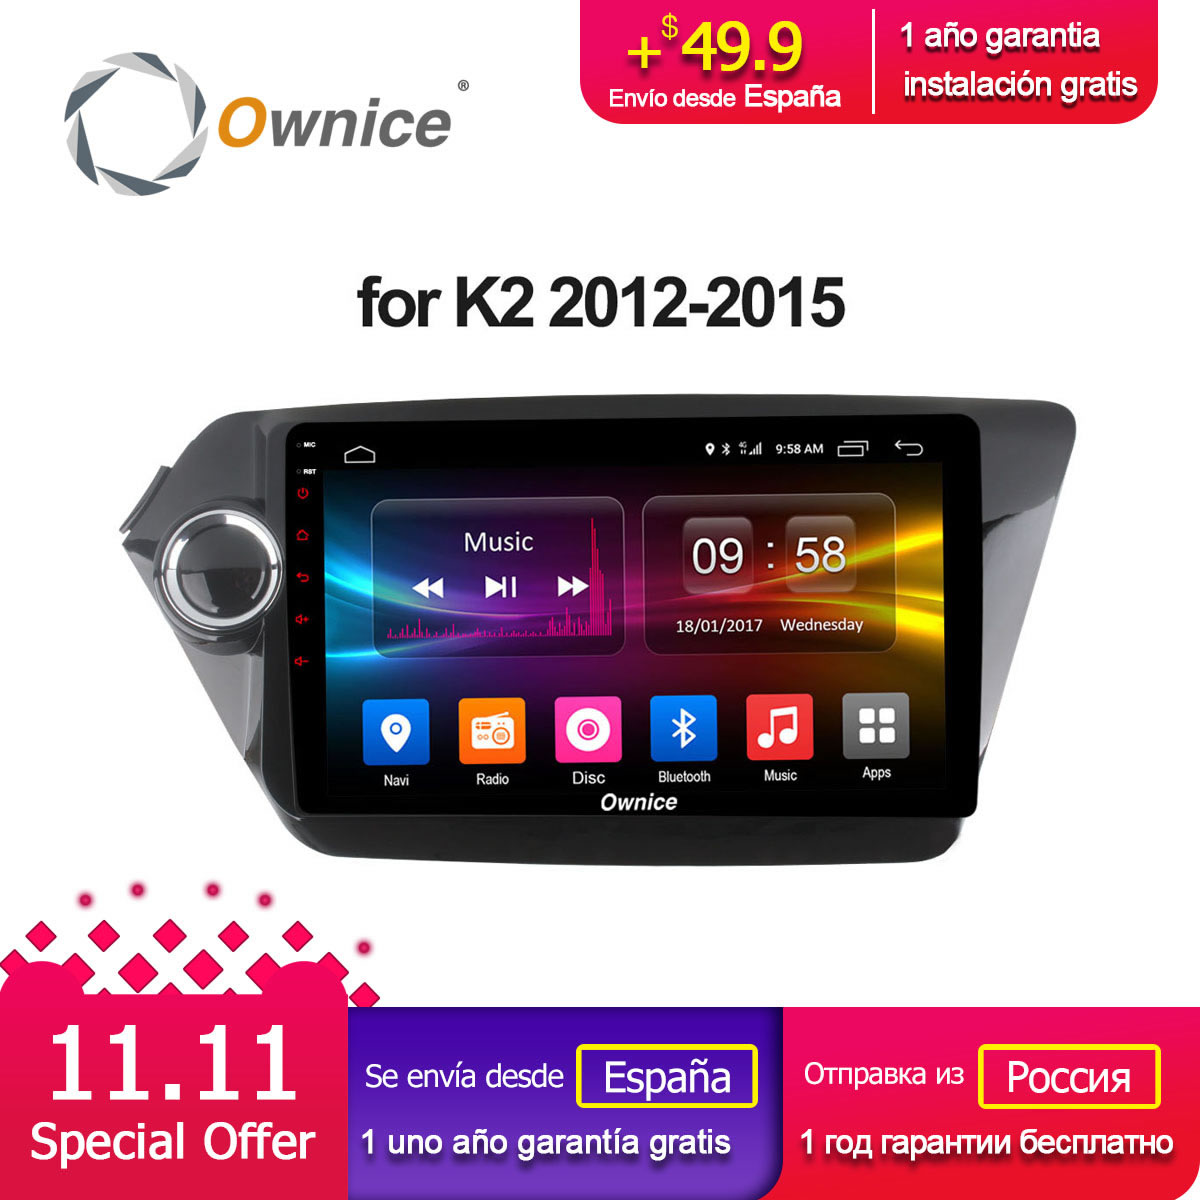 Ownice C500+ G10 Octa 8 core Android 8.1 Car radio gps player 2GB RAM 32GB ROM for Kia rio k2 2012 2013 2014 2015 support 4G LTE цены онлайн